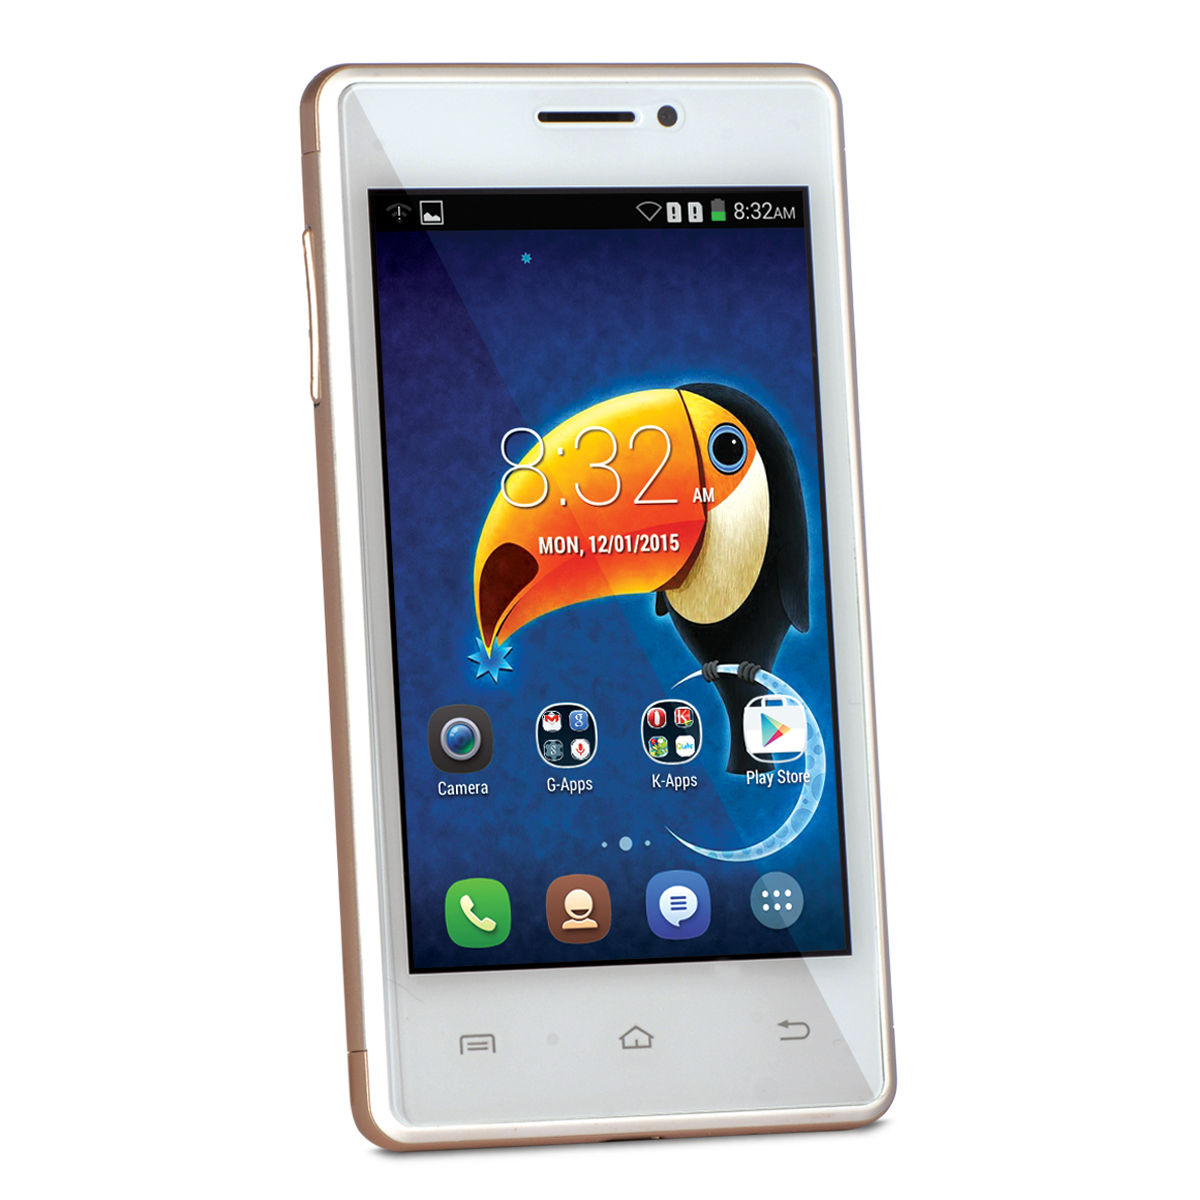 3g in mobile - mobile online shopping india